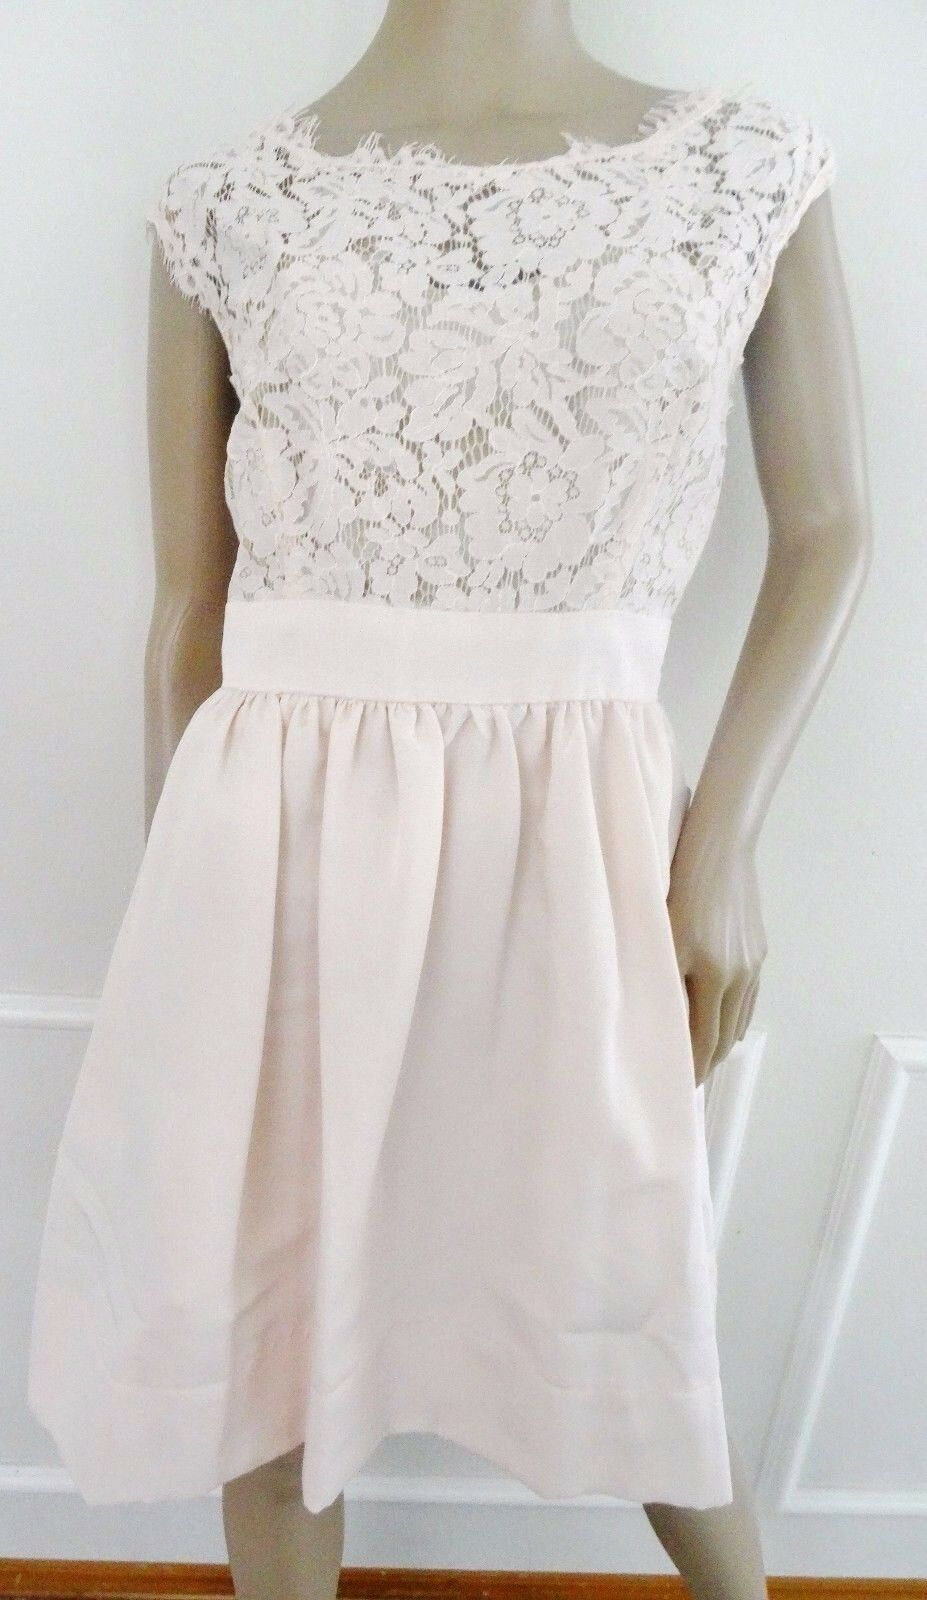 Nwt Eliza J Fit & Flare Lace Scalloped Cocktail Dress Sz 14P Petite Blaush